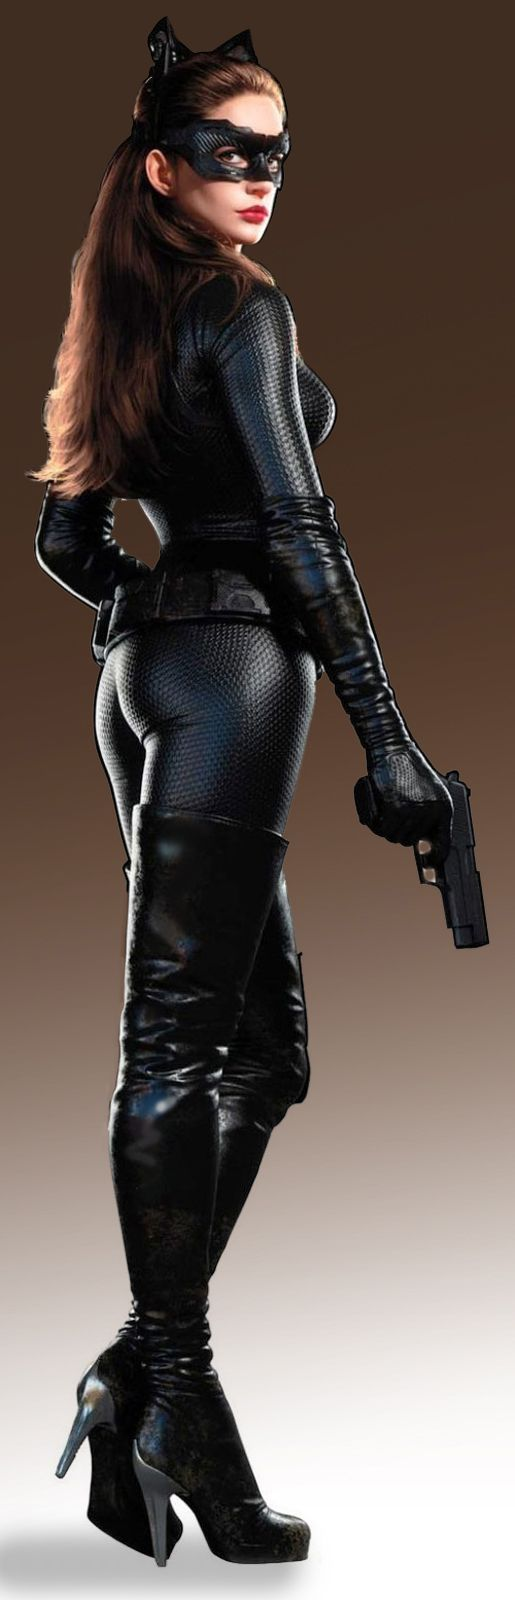 Remarkable dark knight rises anne hathaway as catwoman advise you